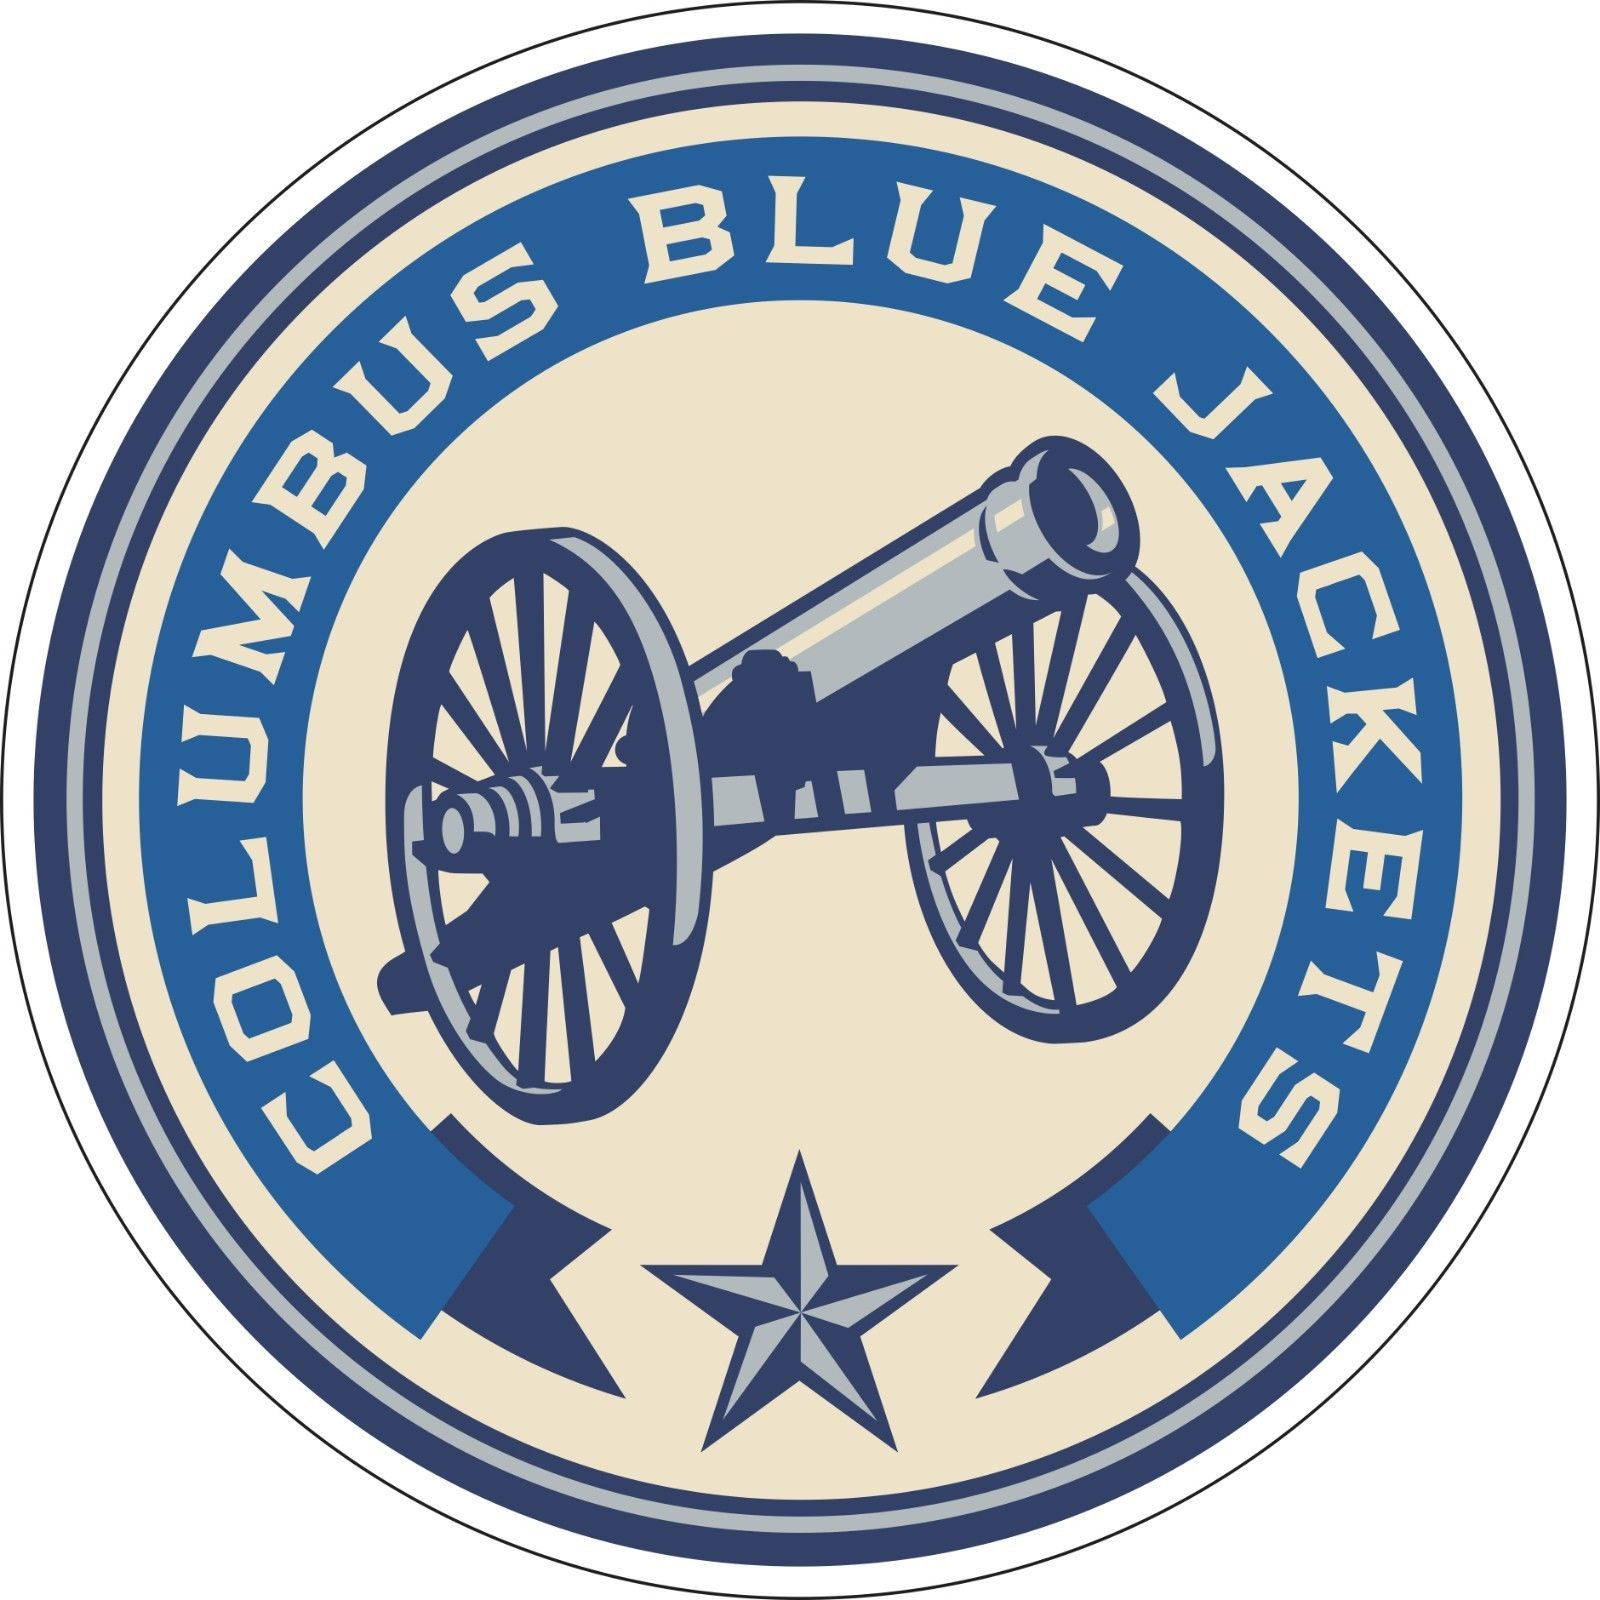 "$3 - Columbus Blue Jackets Nhl Hockey Bumper Sticker Wall Decor Vinyl Decal, 5""X 5"" #ebay #Collectibles"